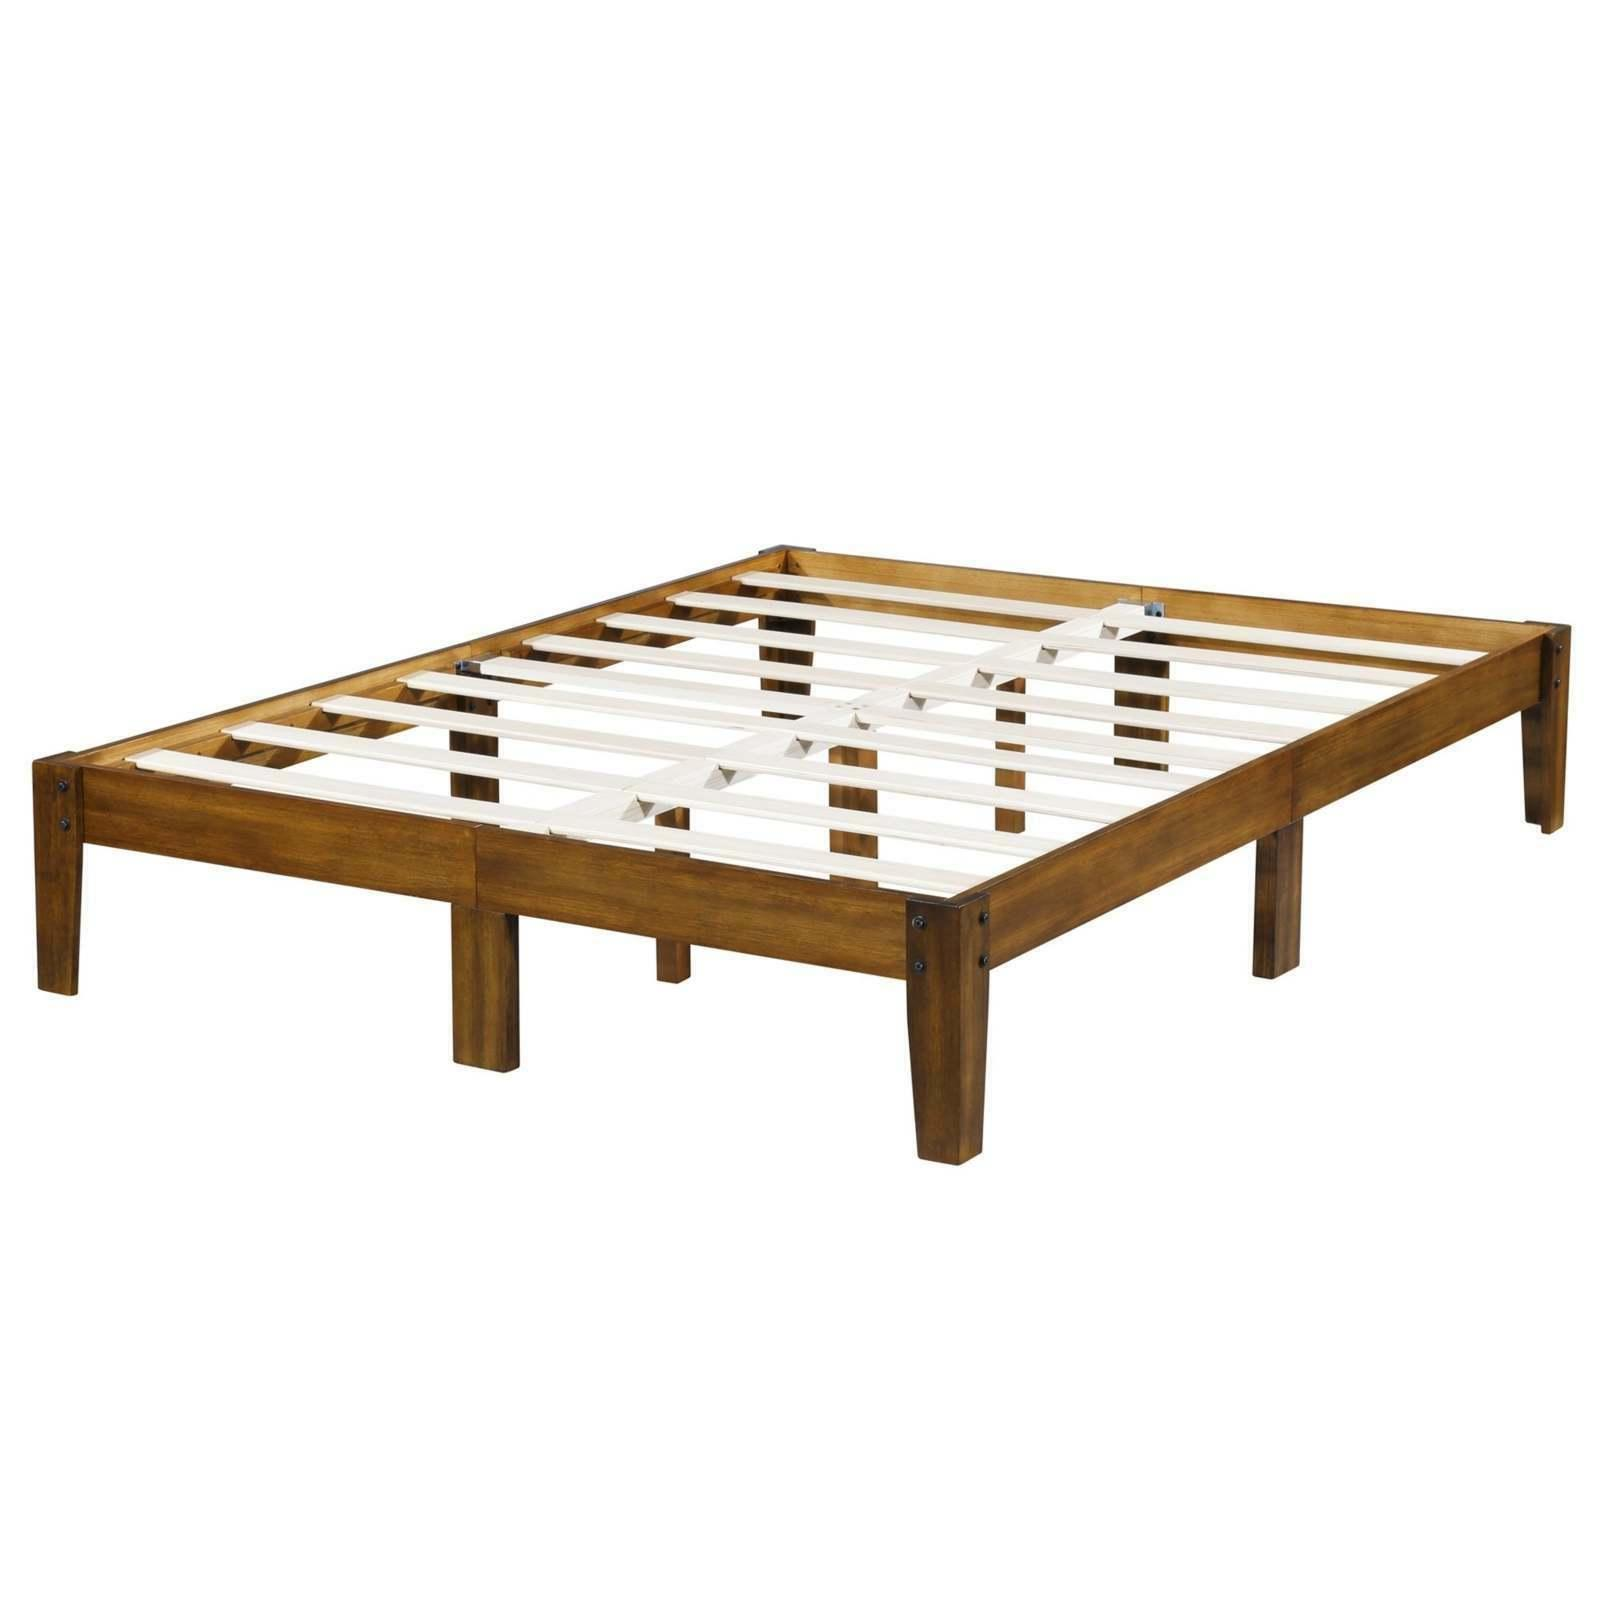 Rustic Bed Frame Queen 14 Inch High Cherry Finish